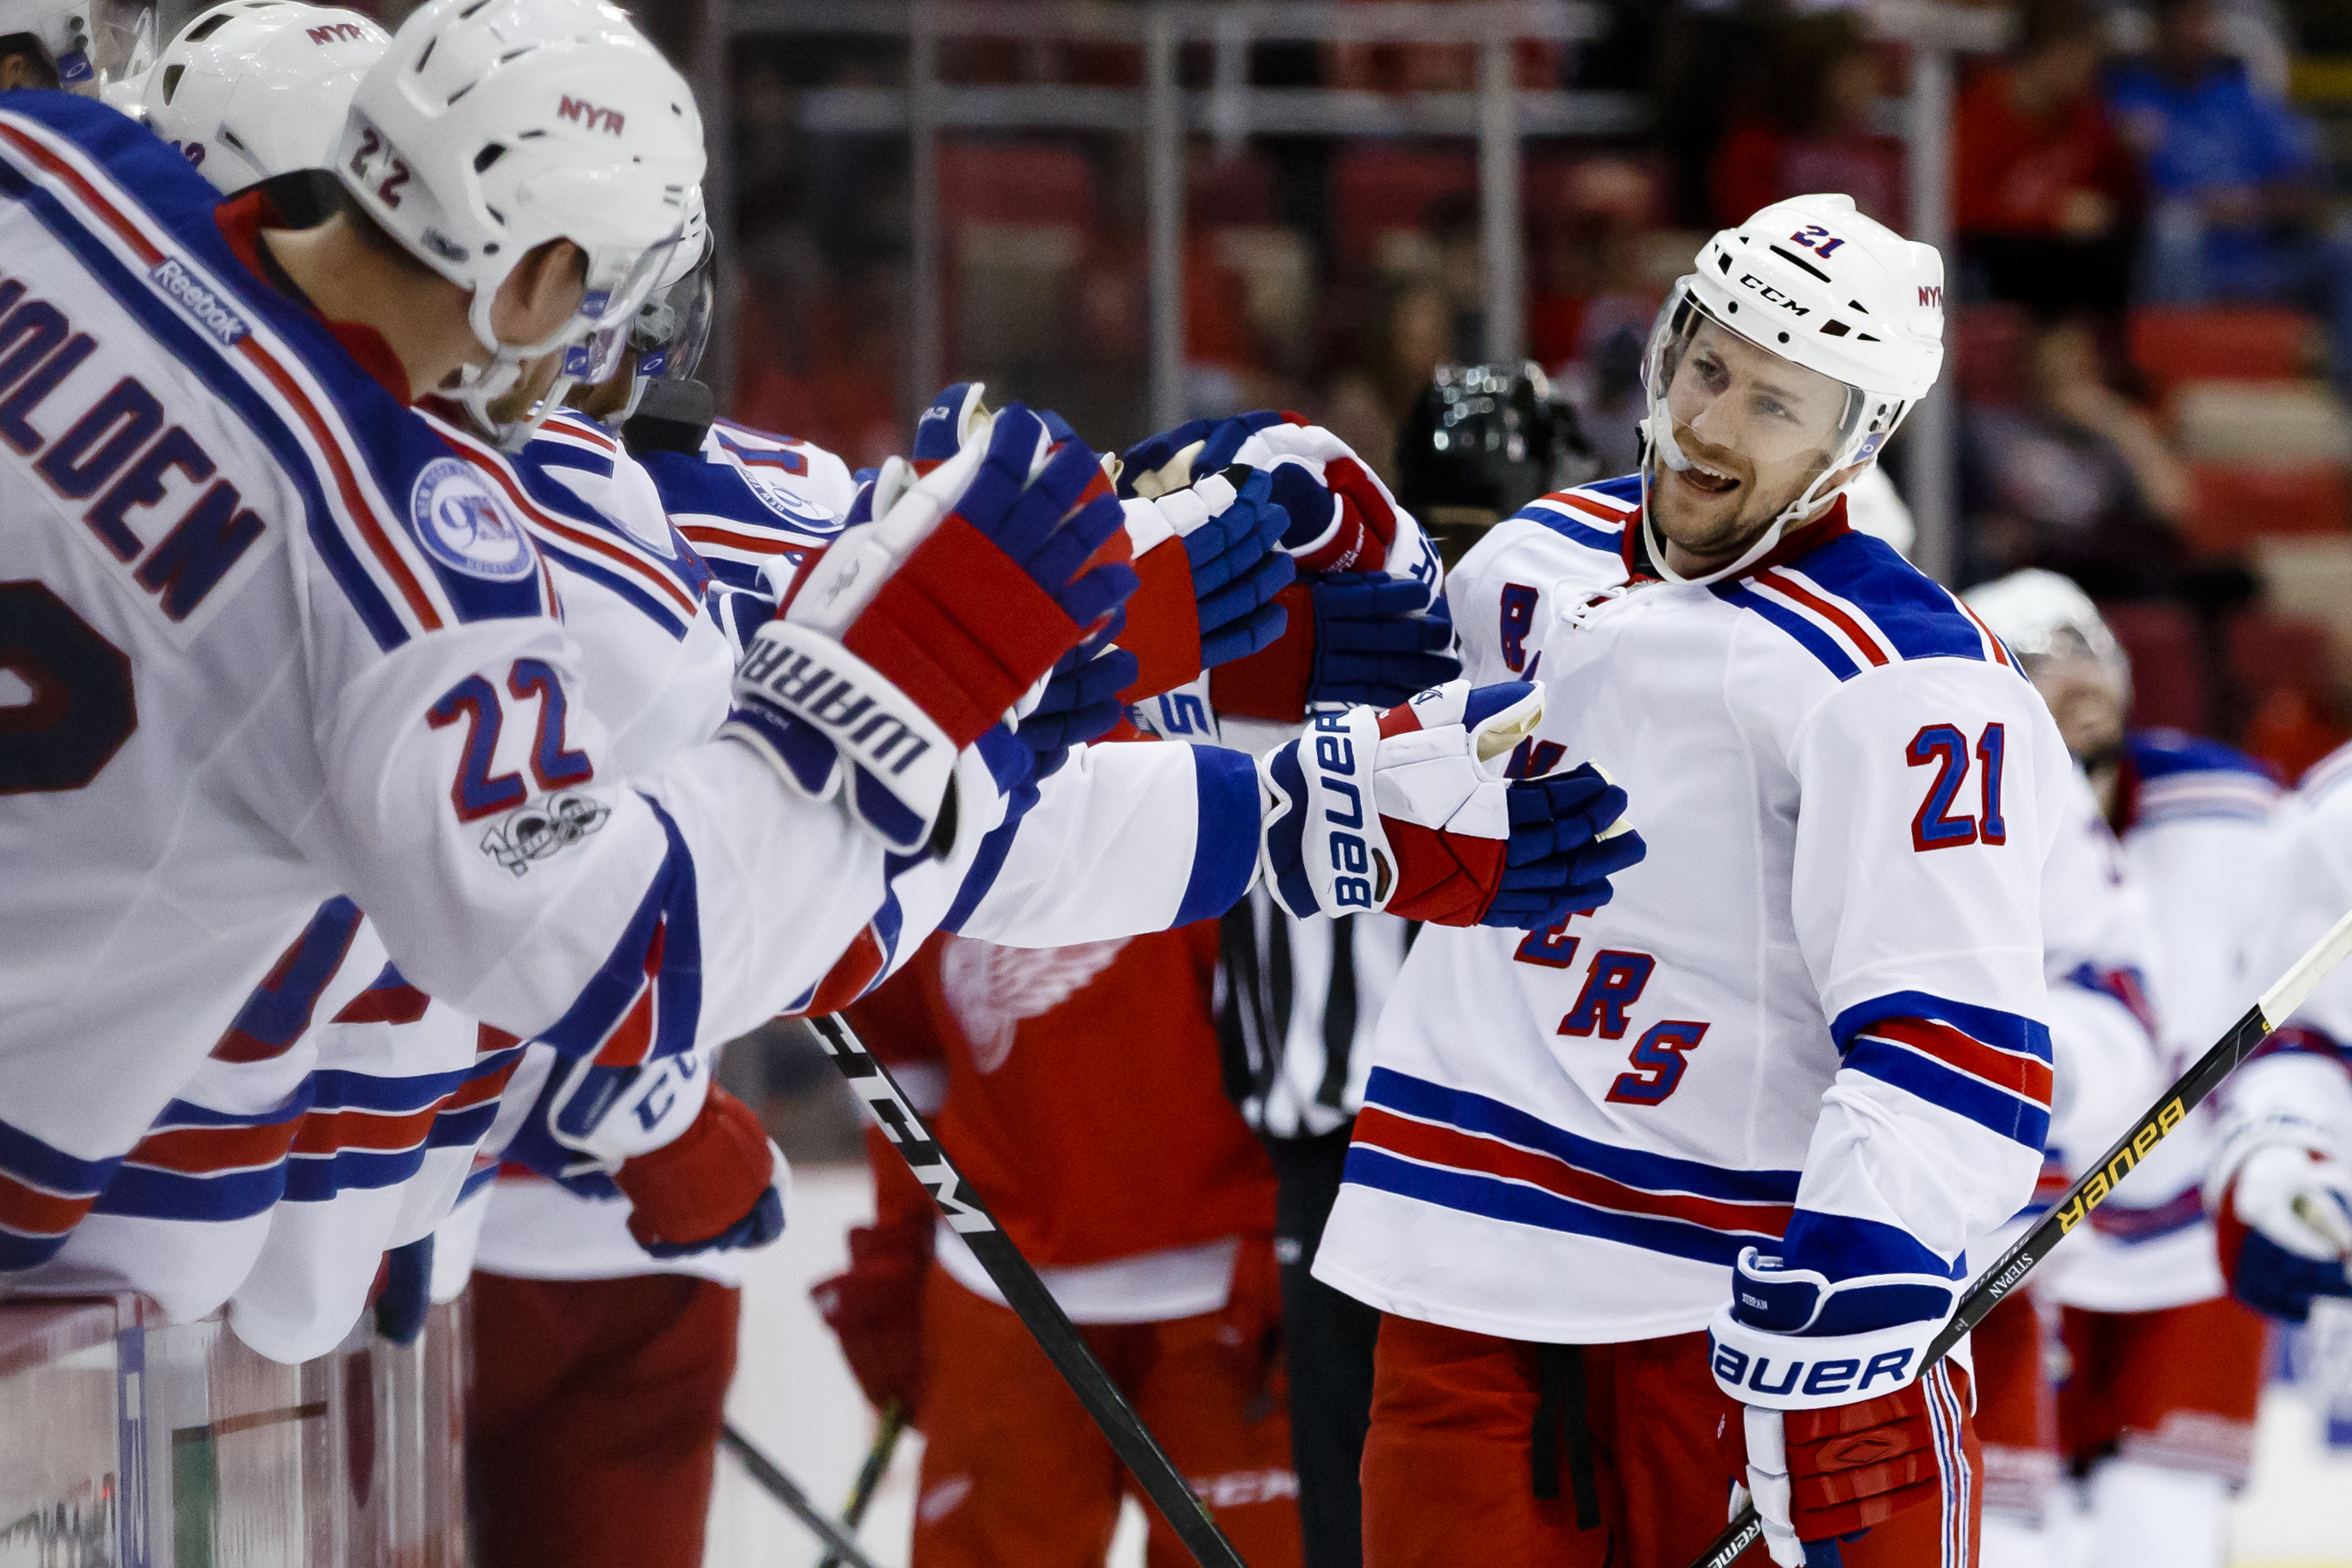 9938808-nhl-new-york-rangers-at-detroit-red-wings